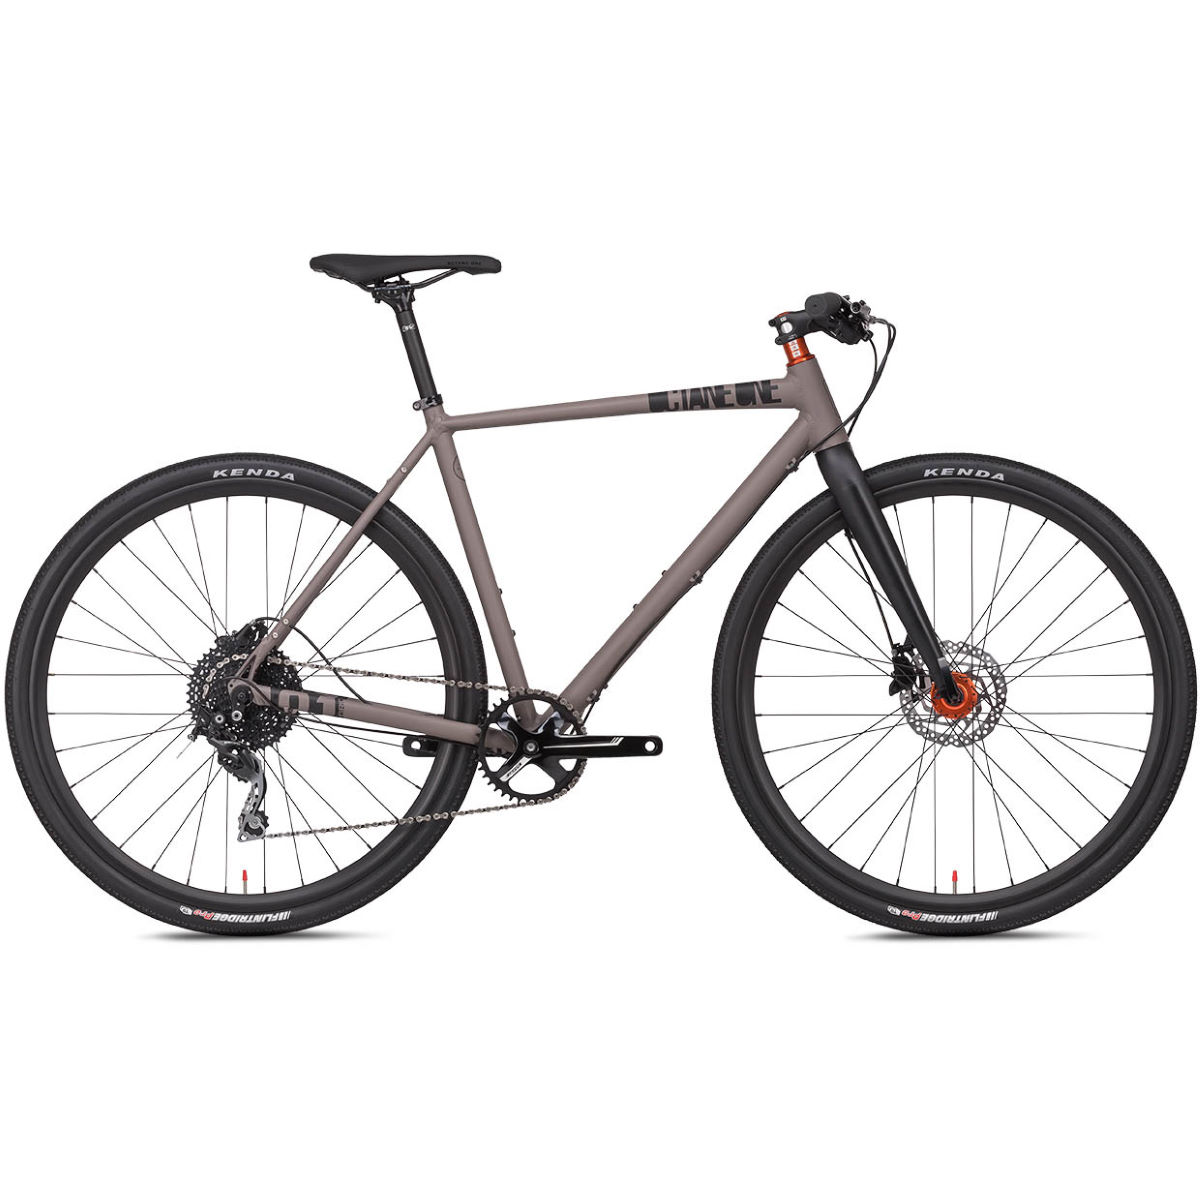 Octane One Octane One Gridd Flat Adventure Road Bike (2020)   Adventure Bikes